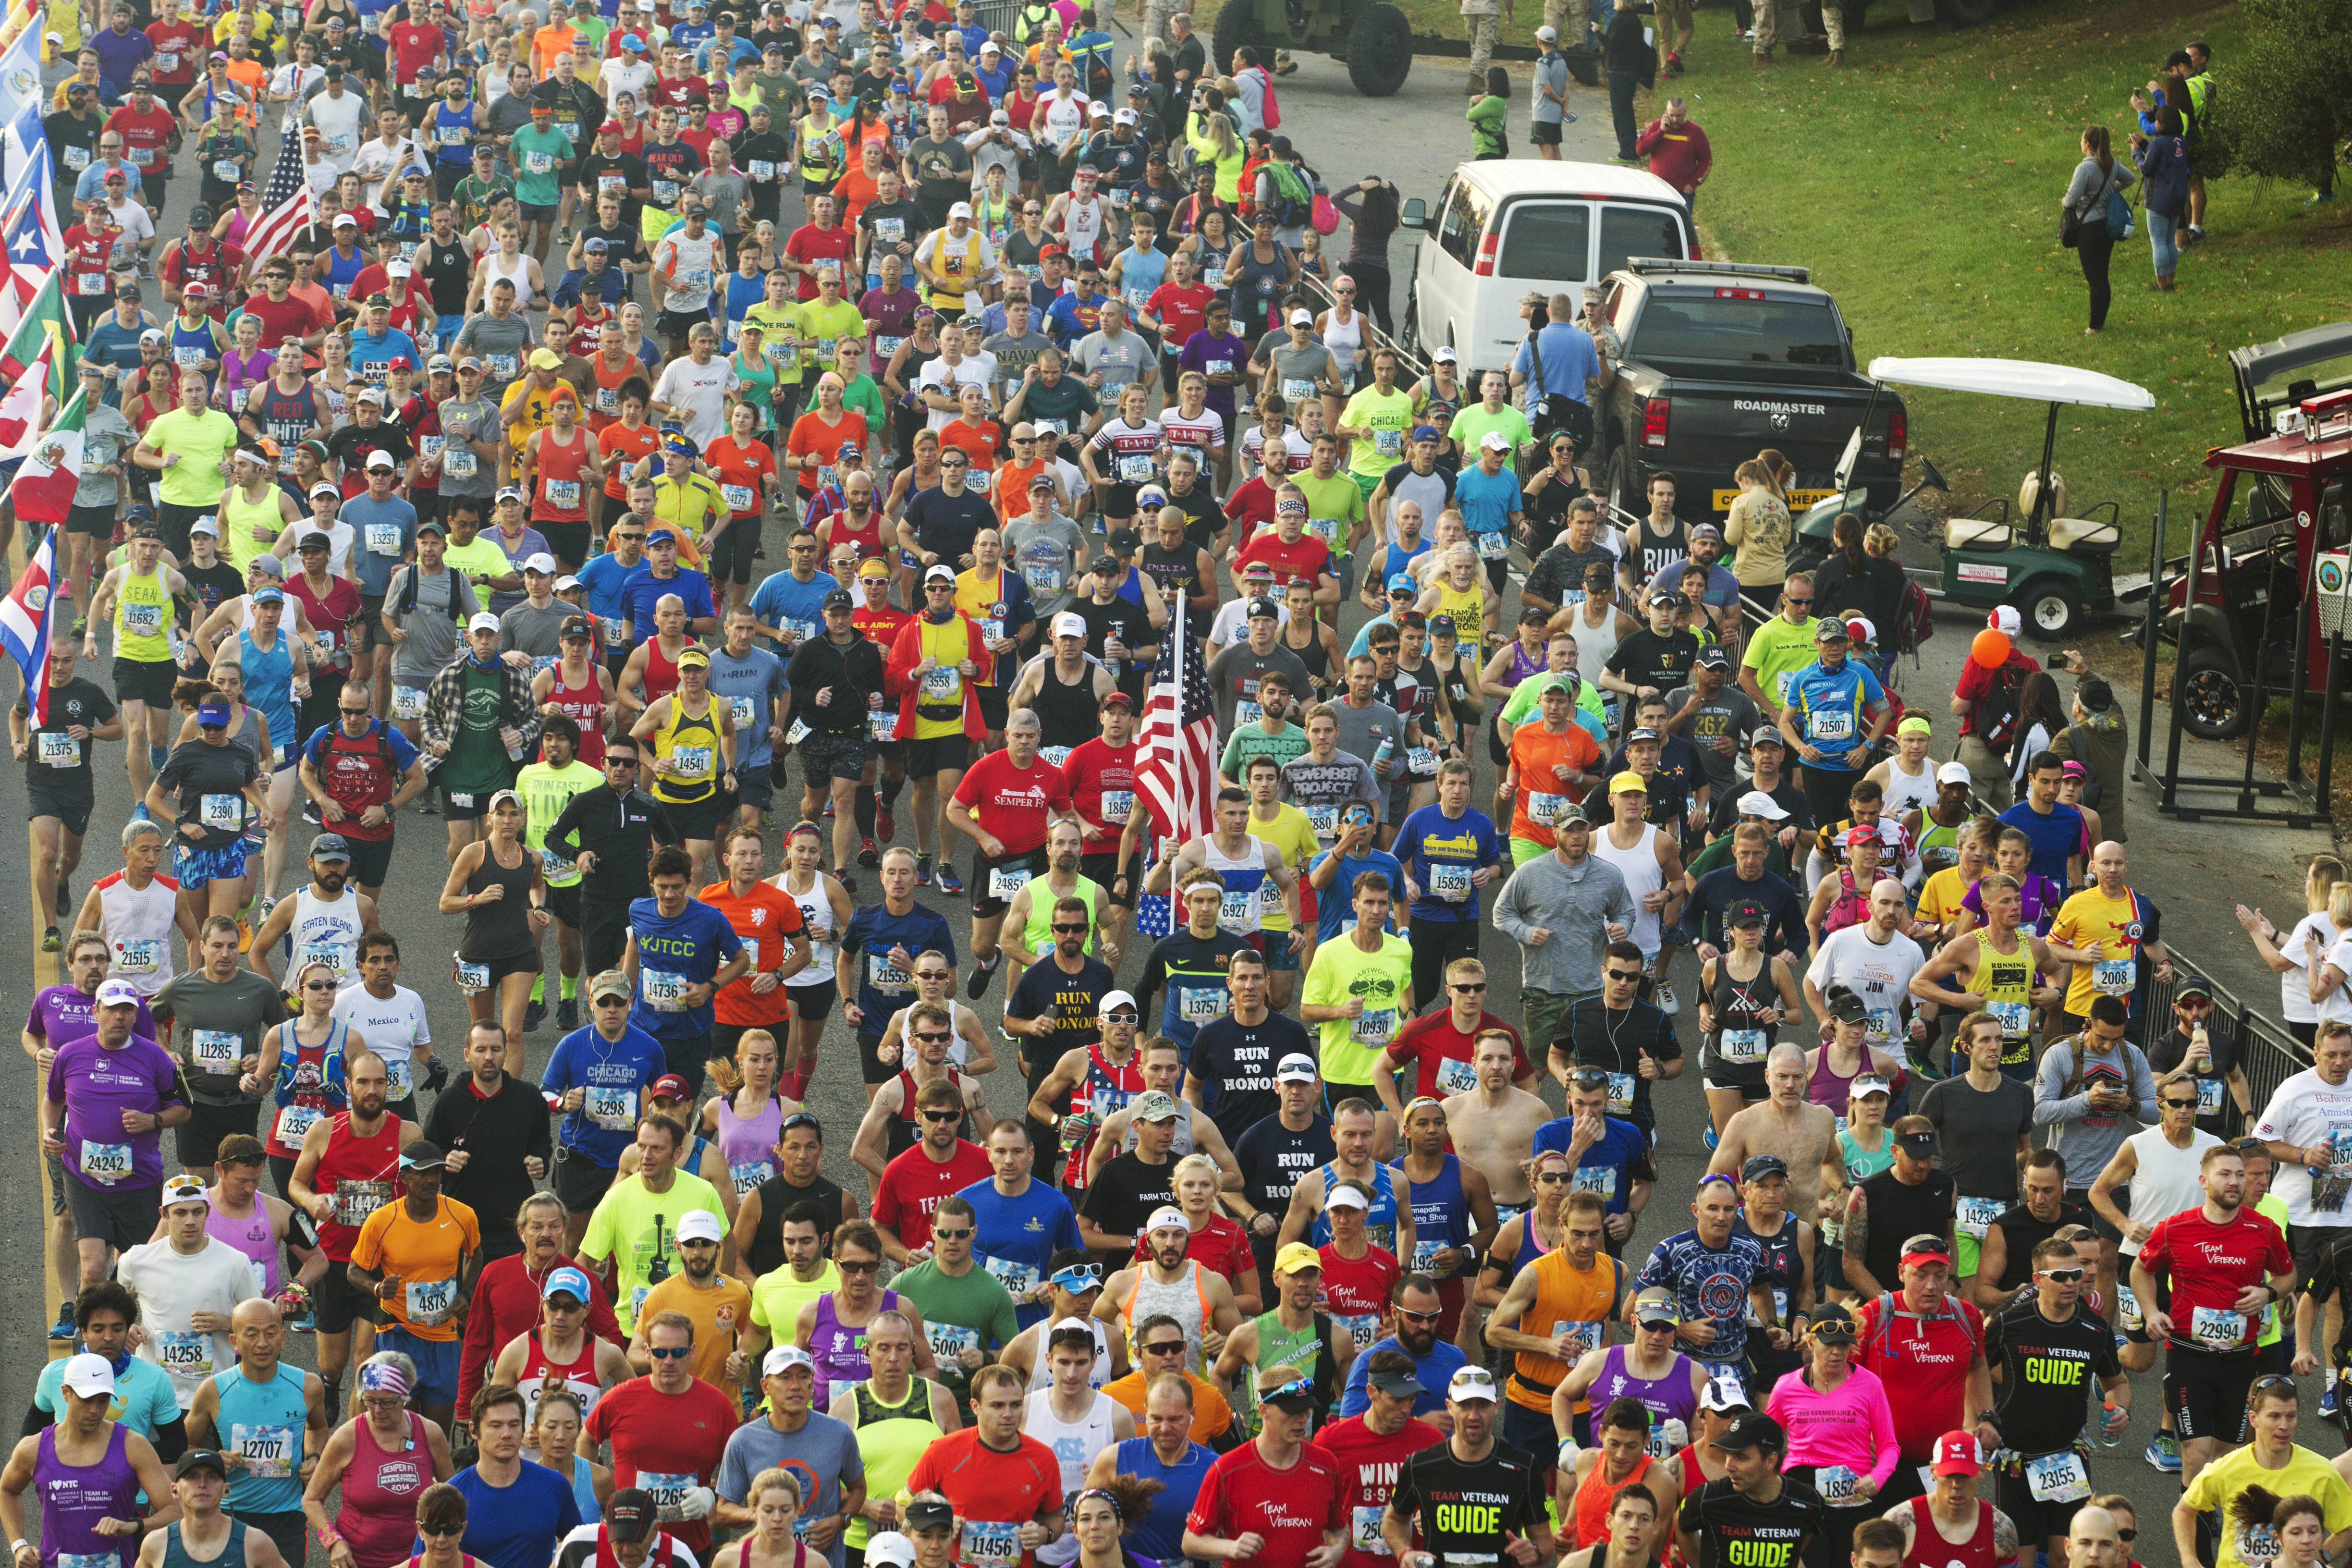 Marine Corps Marathon lottery opens March 22 | WTOP